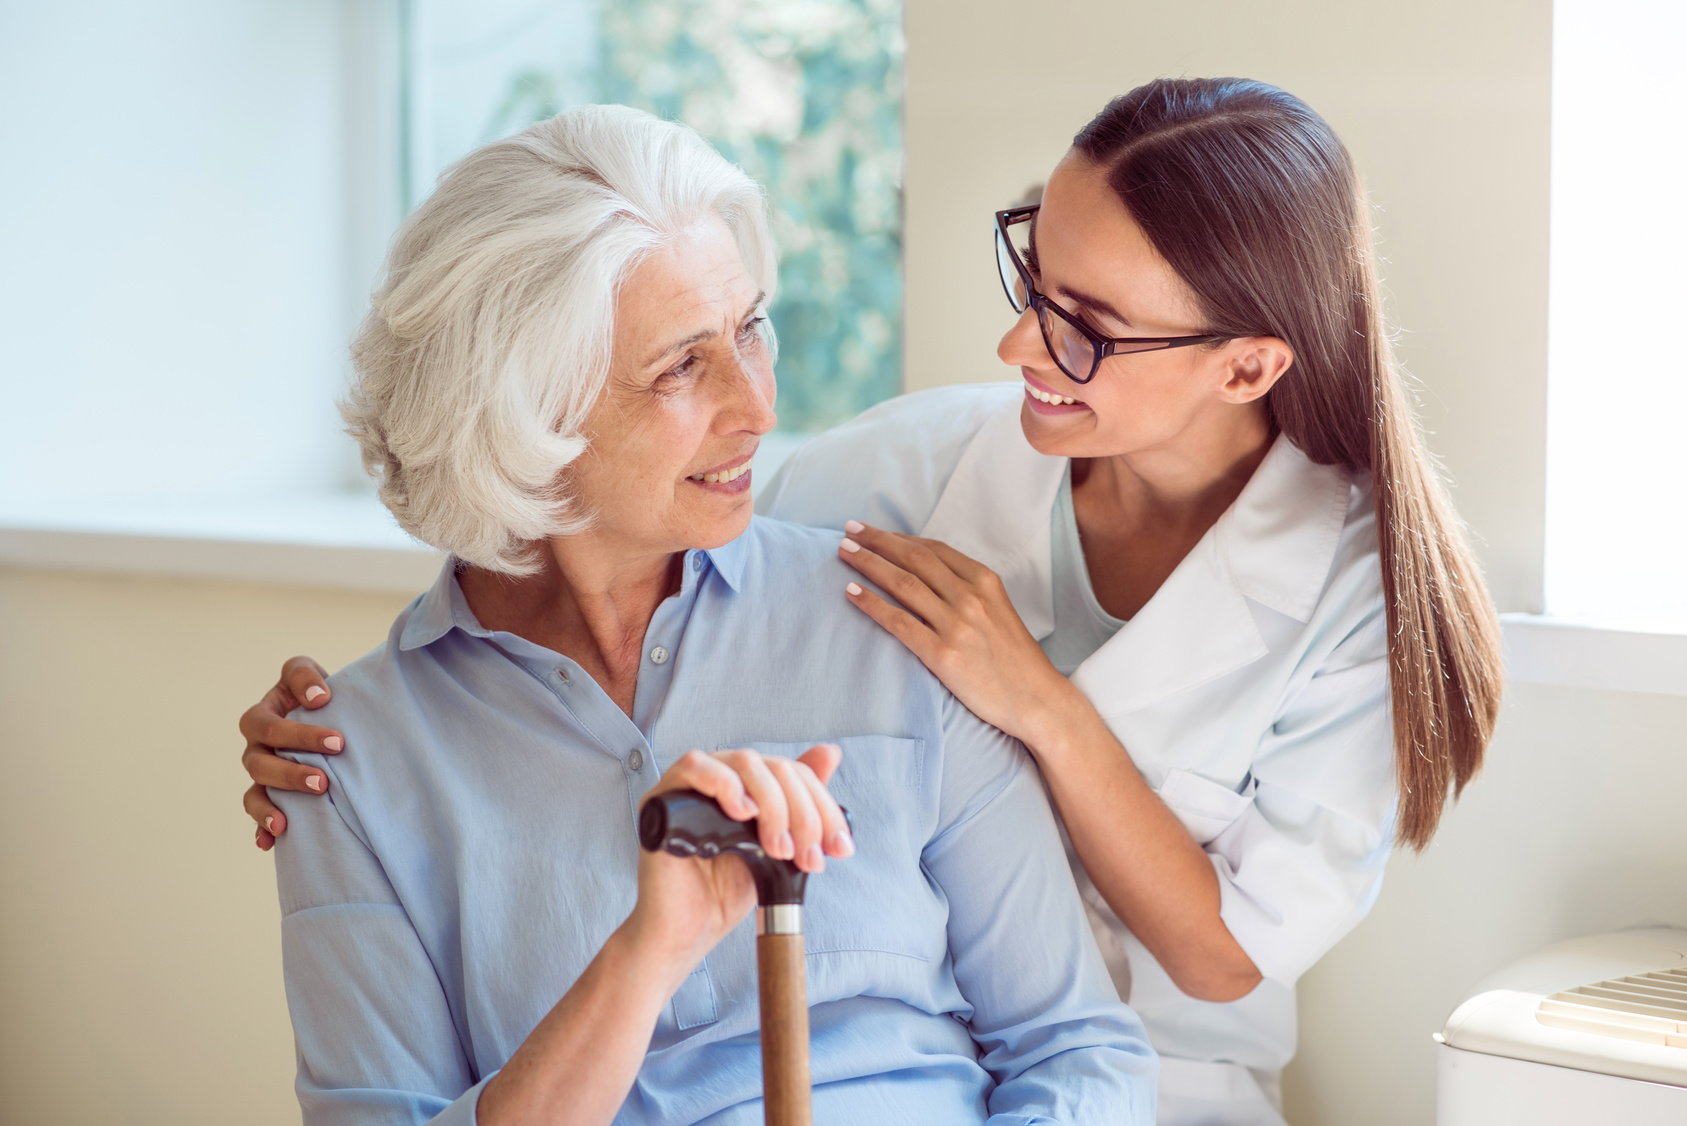 Caregiver/Personal Care Aides</br><span style='color:#fff;font-size:30px;'>Be a hero in healthcare! Our community needs you.</span>